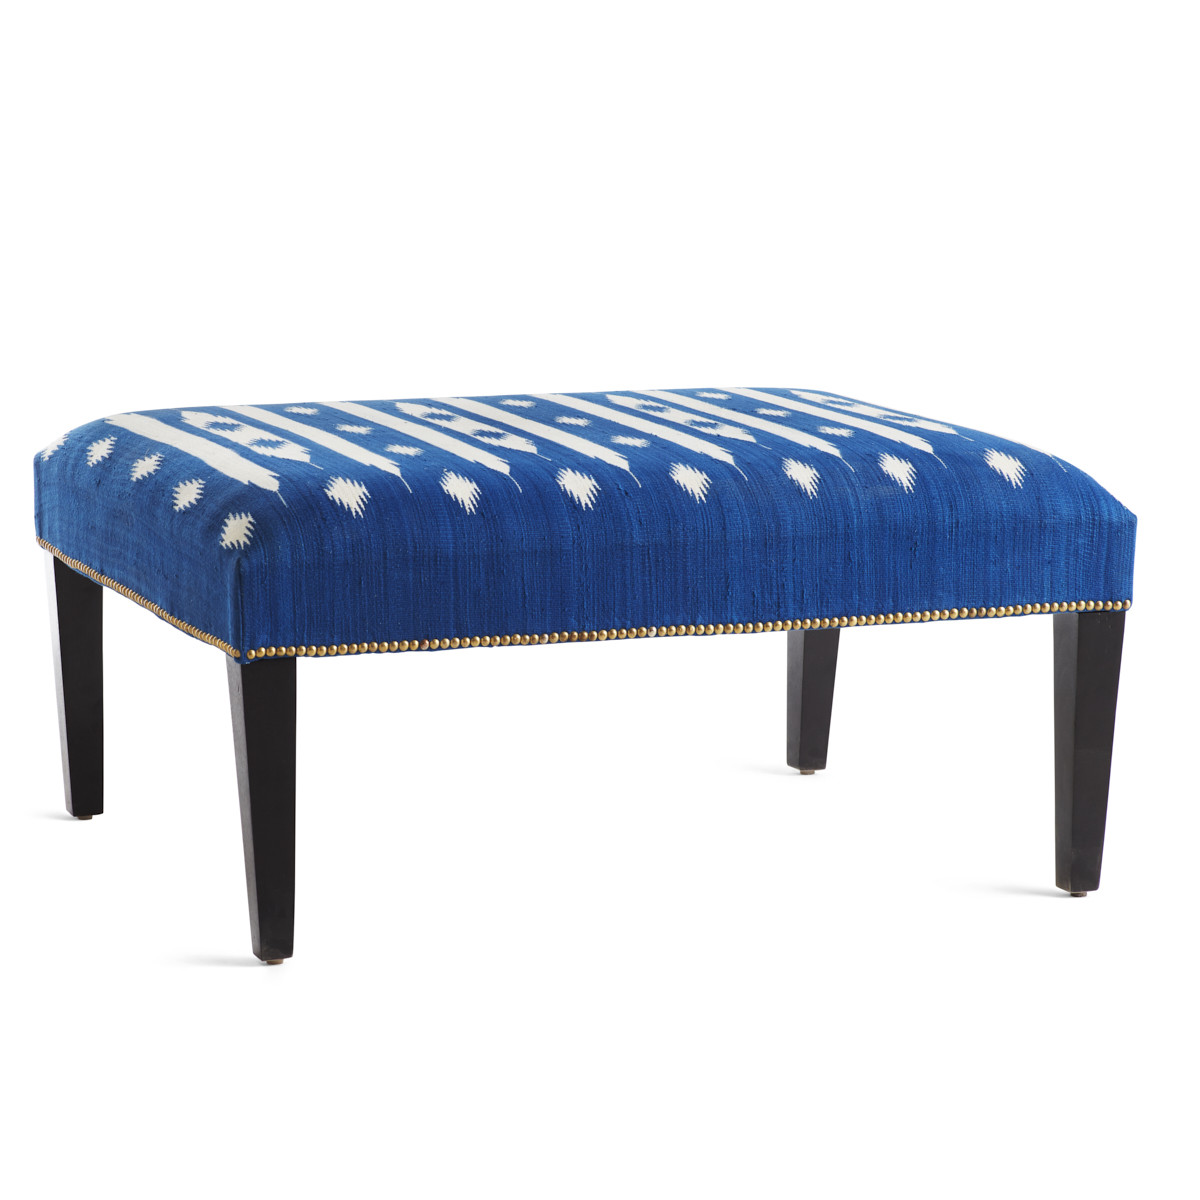 Blue Handmade Embroidered Bench Seat